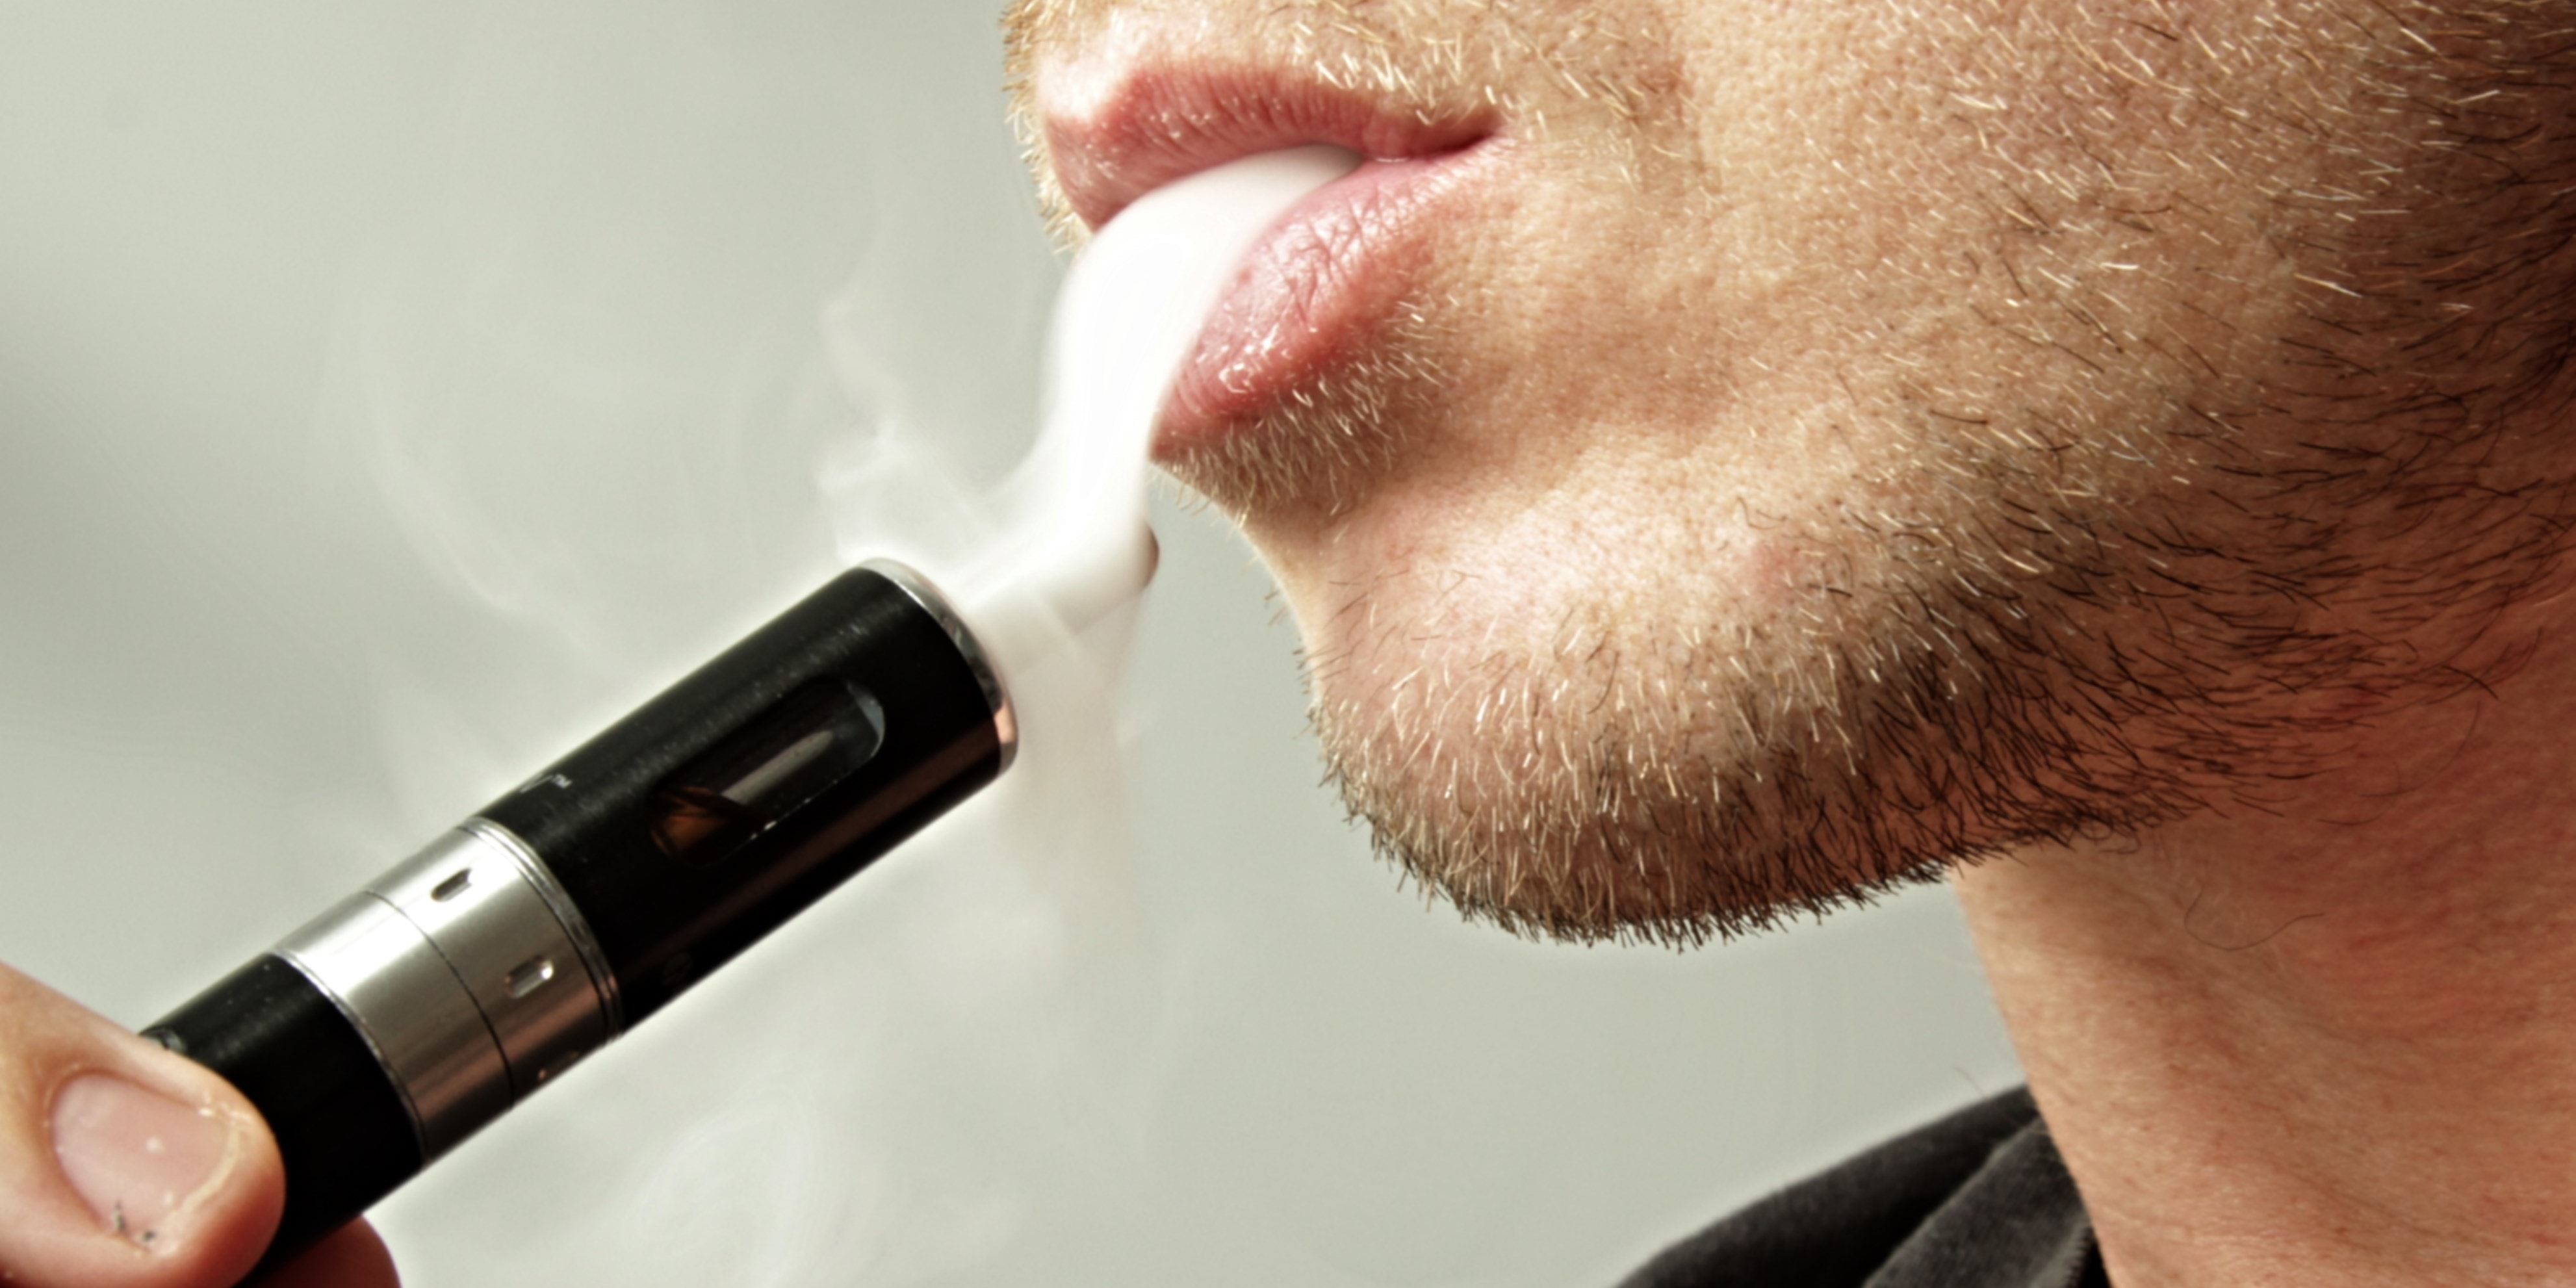 E Cigarette User Exhaling Vapor Smoke - Vape Pen e cig Device